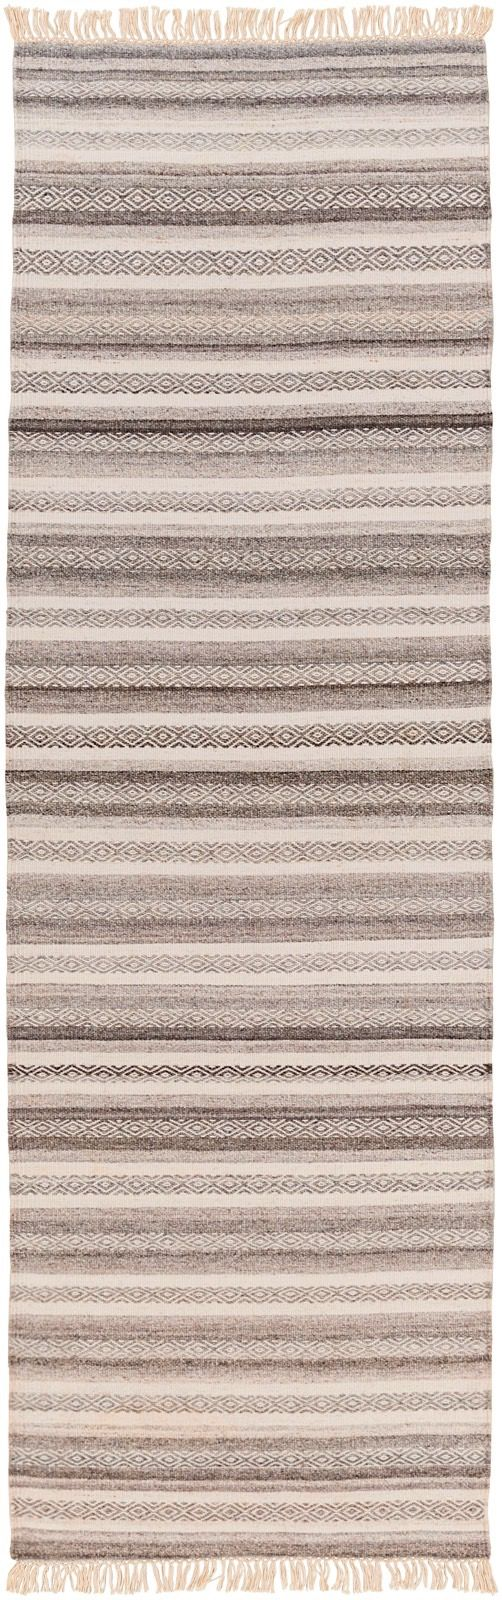 surya isabella contemporary area rug collection